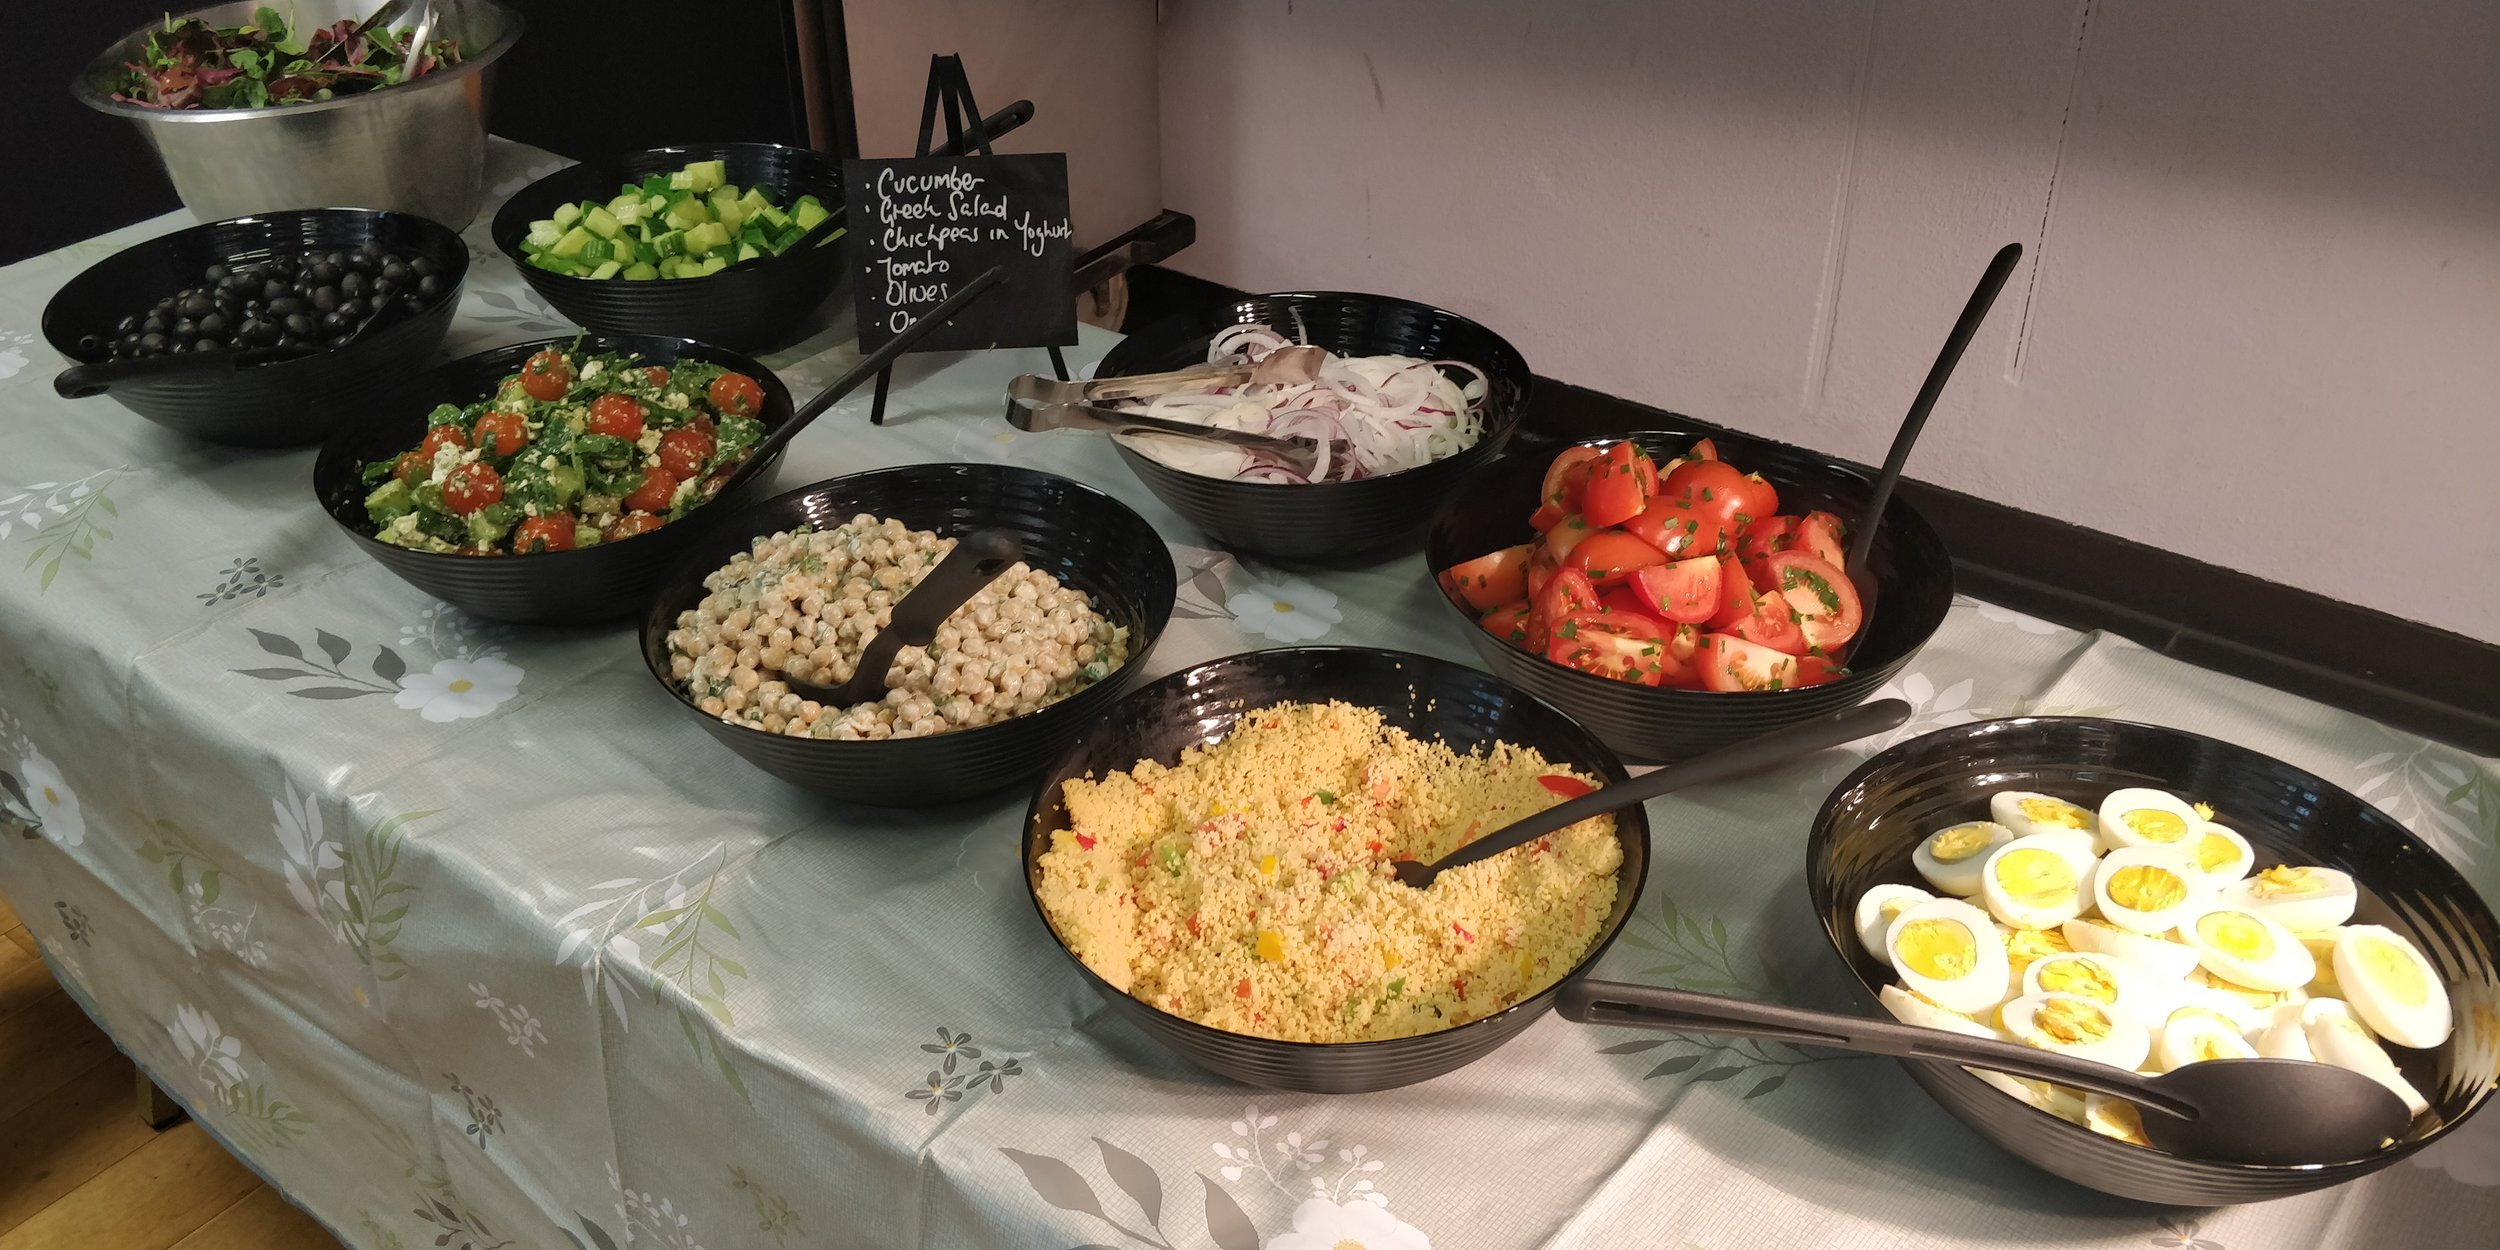 Catering Menu - Catering available for all types of events